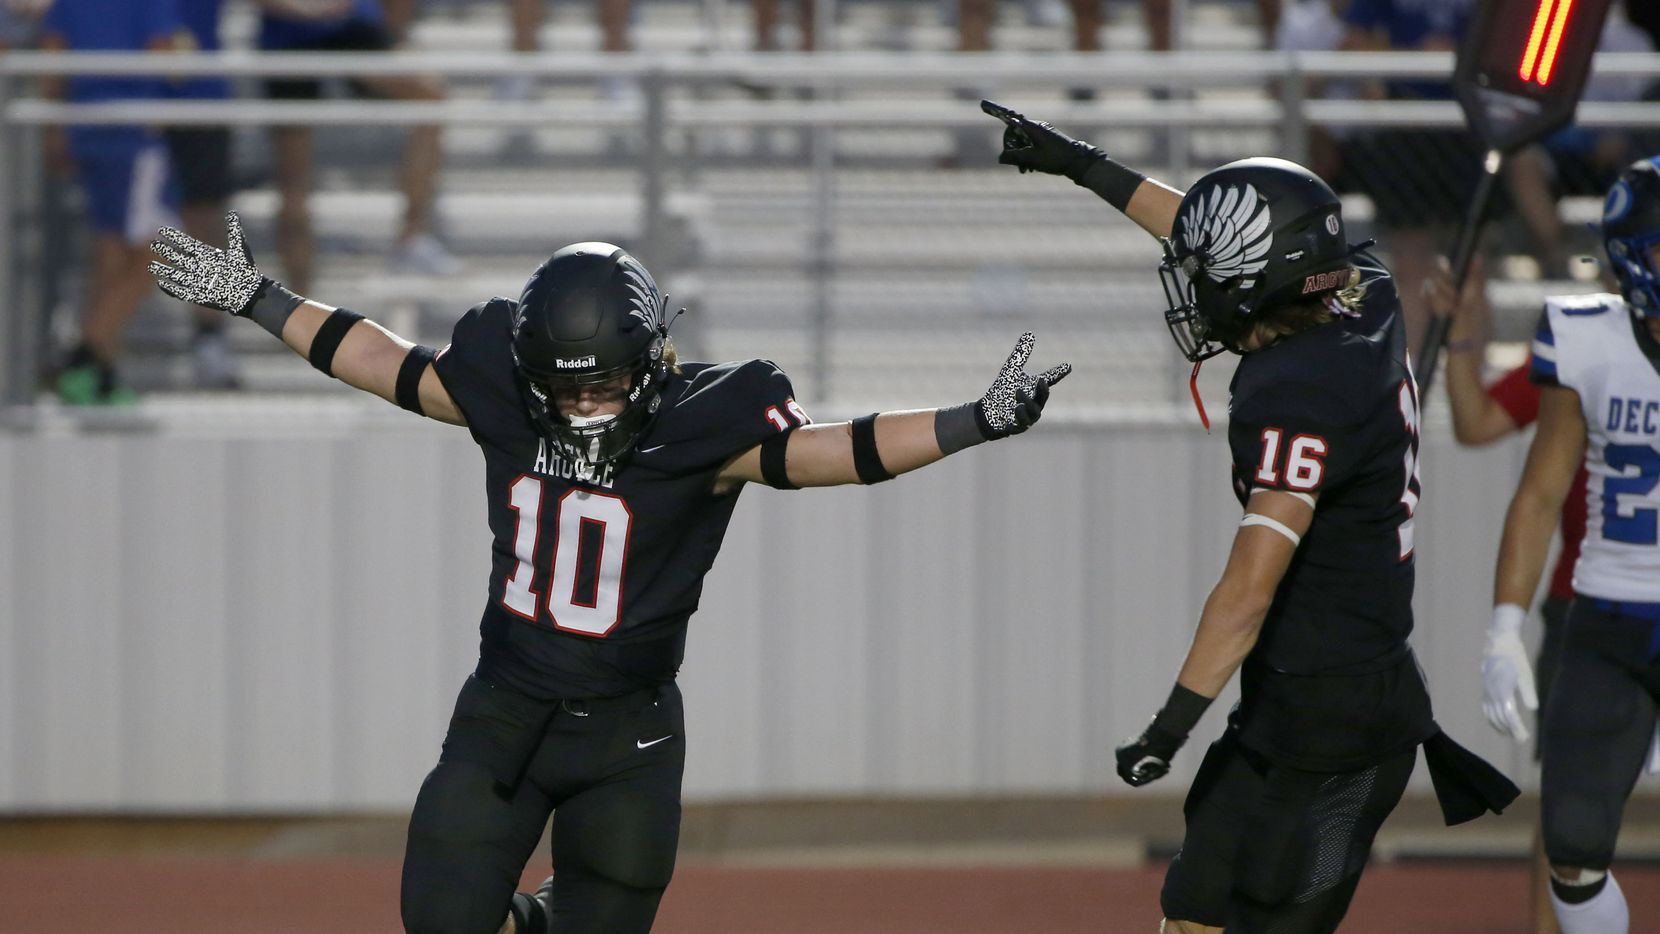 Argyles Will Ramsey (10) celebrates his interception against Decater with Jacob Robinson (16) during a high school football game in Argyle, Tx, on August 28, 2020.